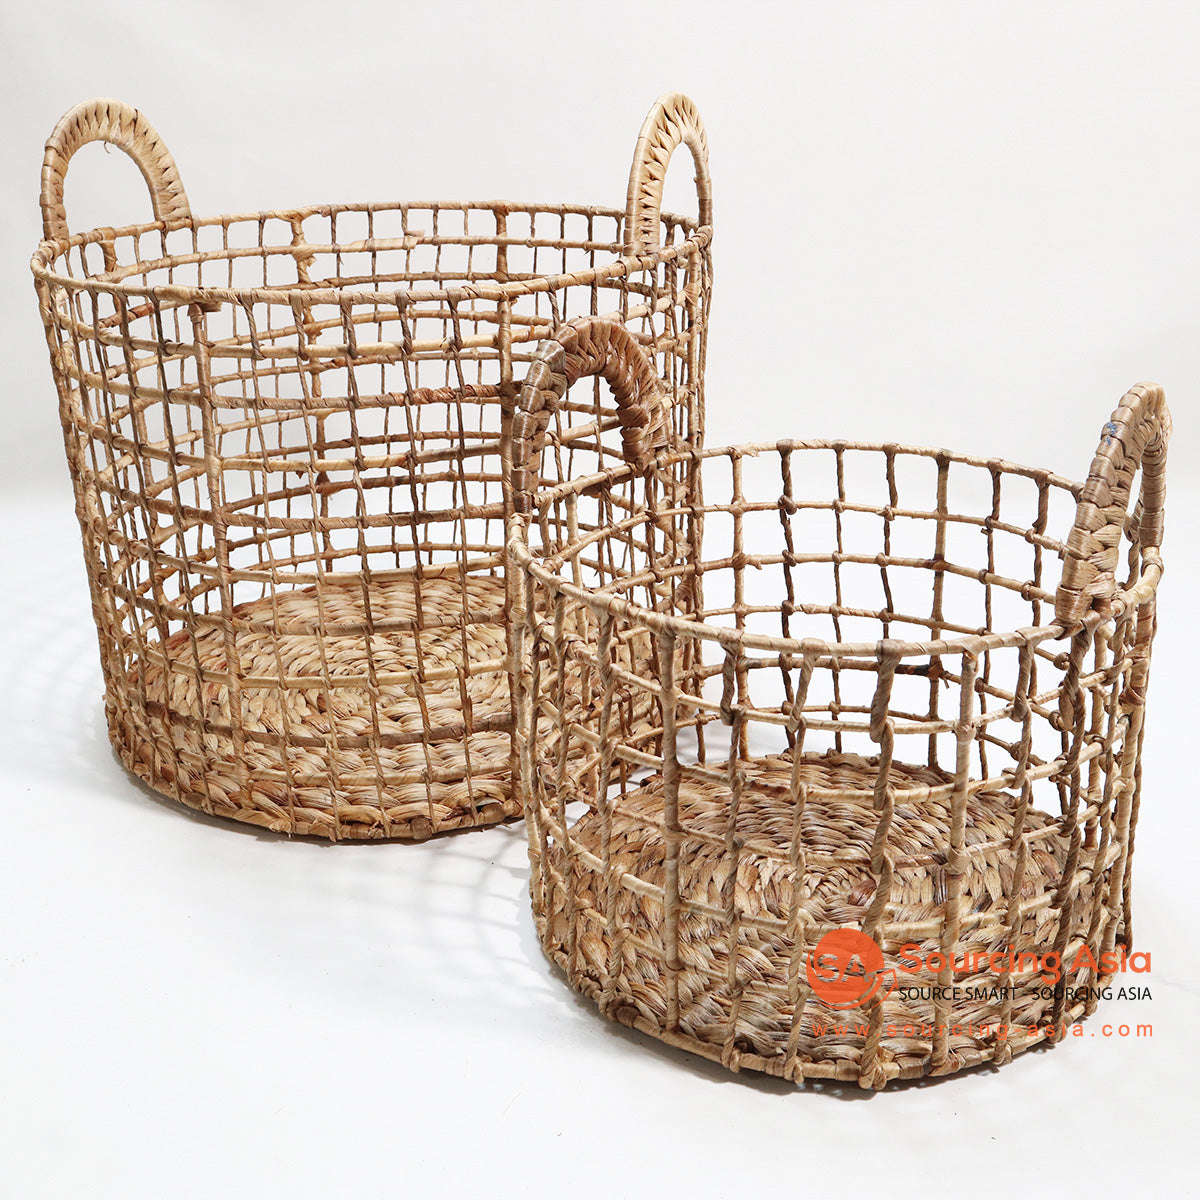 HBSC094 SET OF 2 SQUARE WIRE WATER HYACINTH BASKETS NATURAL